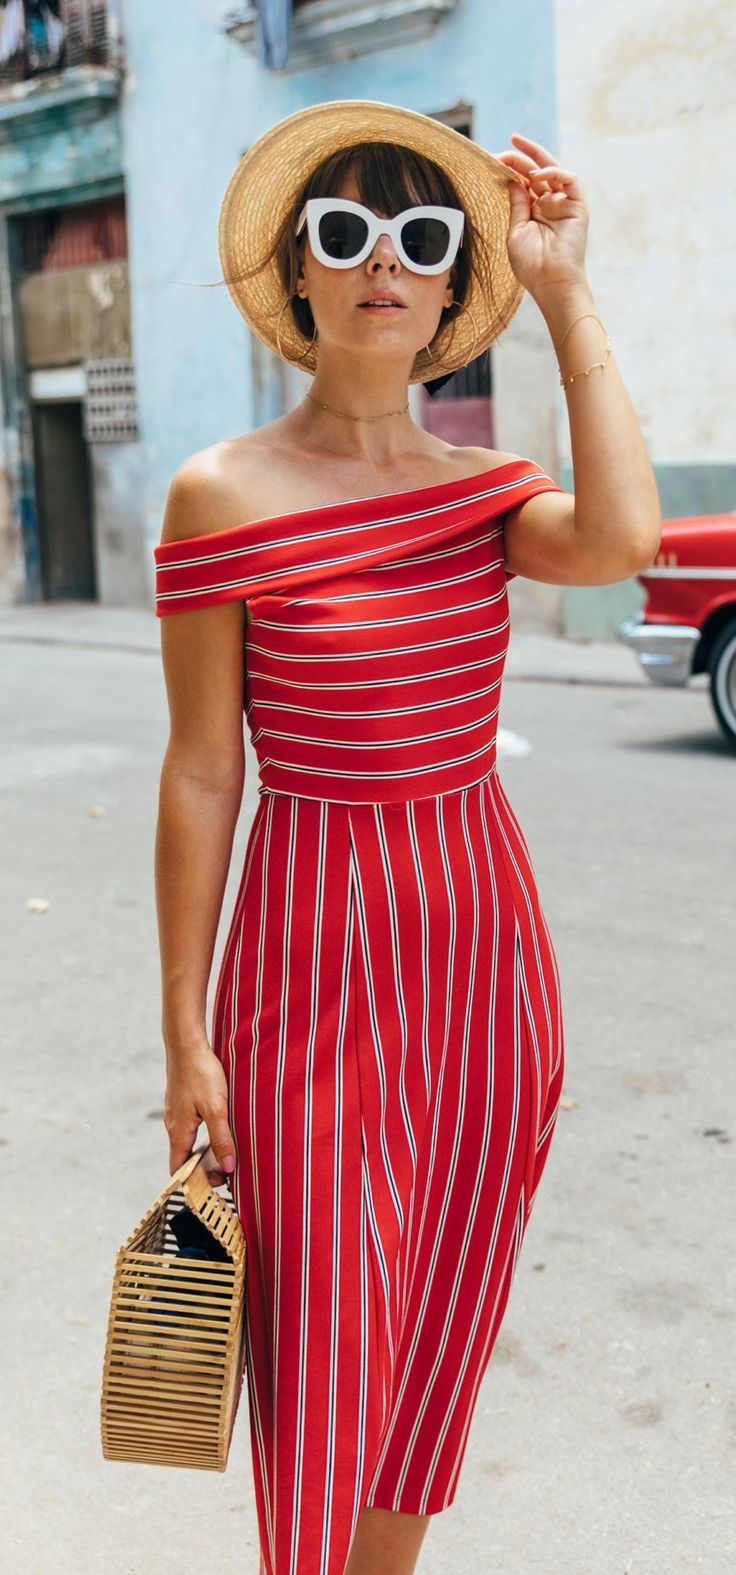 #summer #outfits Round Hat + Red Striped Off The Shoulder Dress + Wood Clutch